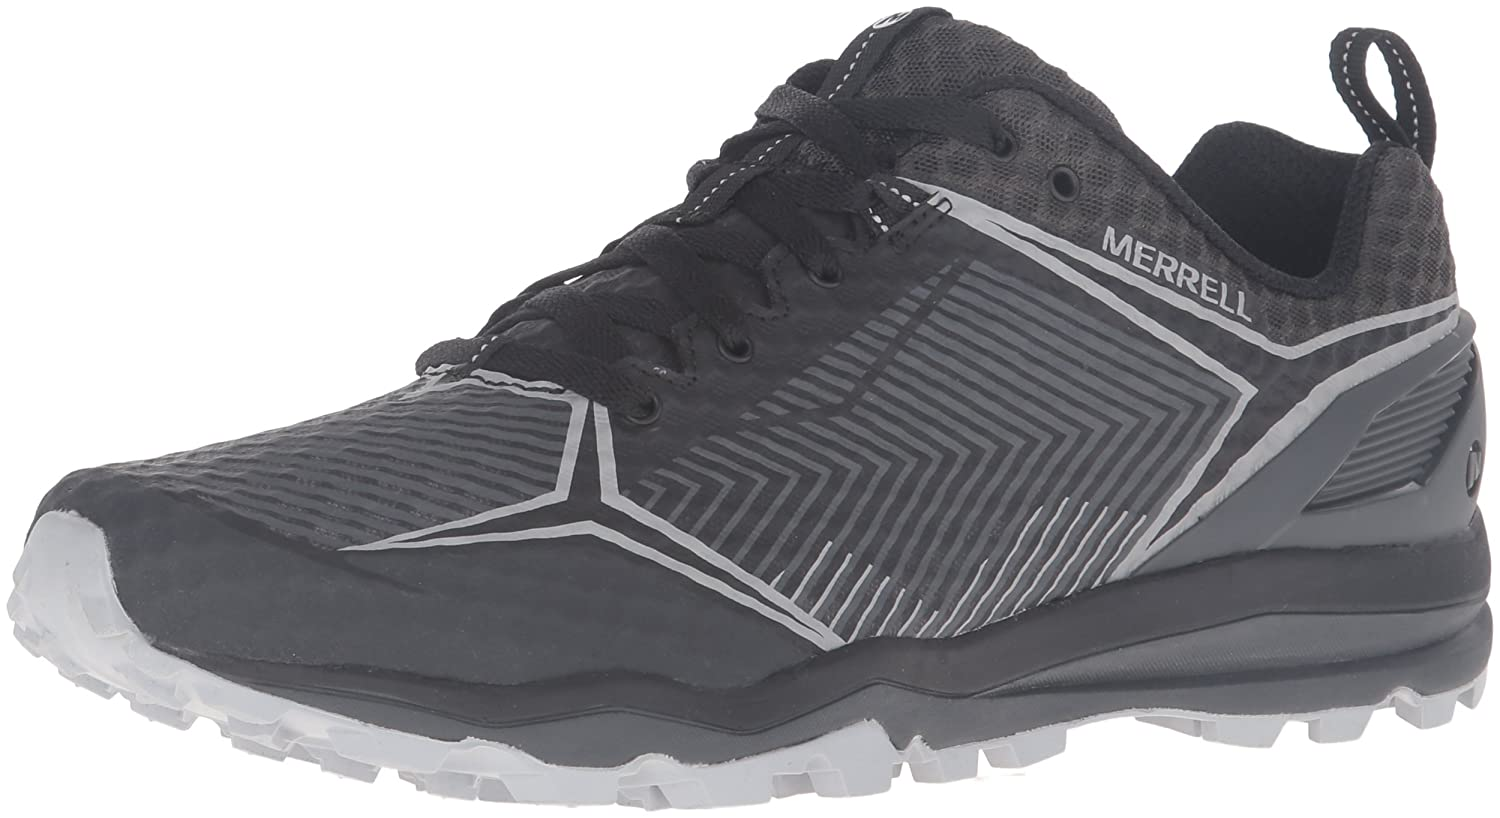 Merrell Men's All Out Crush Shield Trail Runner B0193REN0S 12 M US|Black/Granite